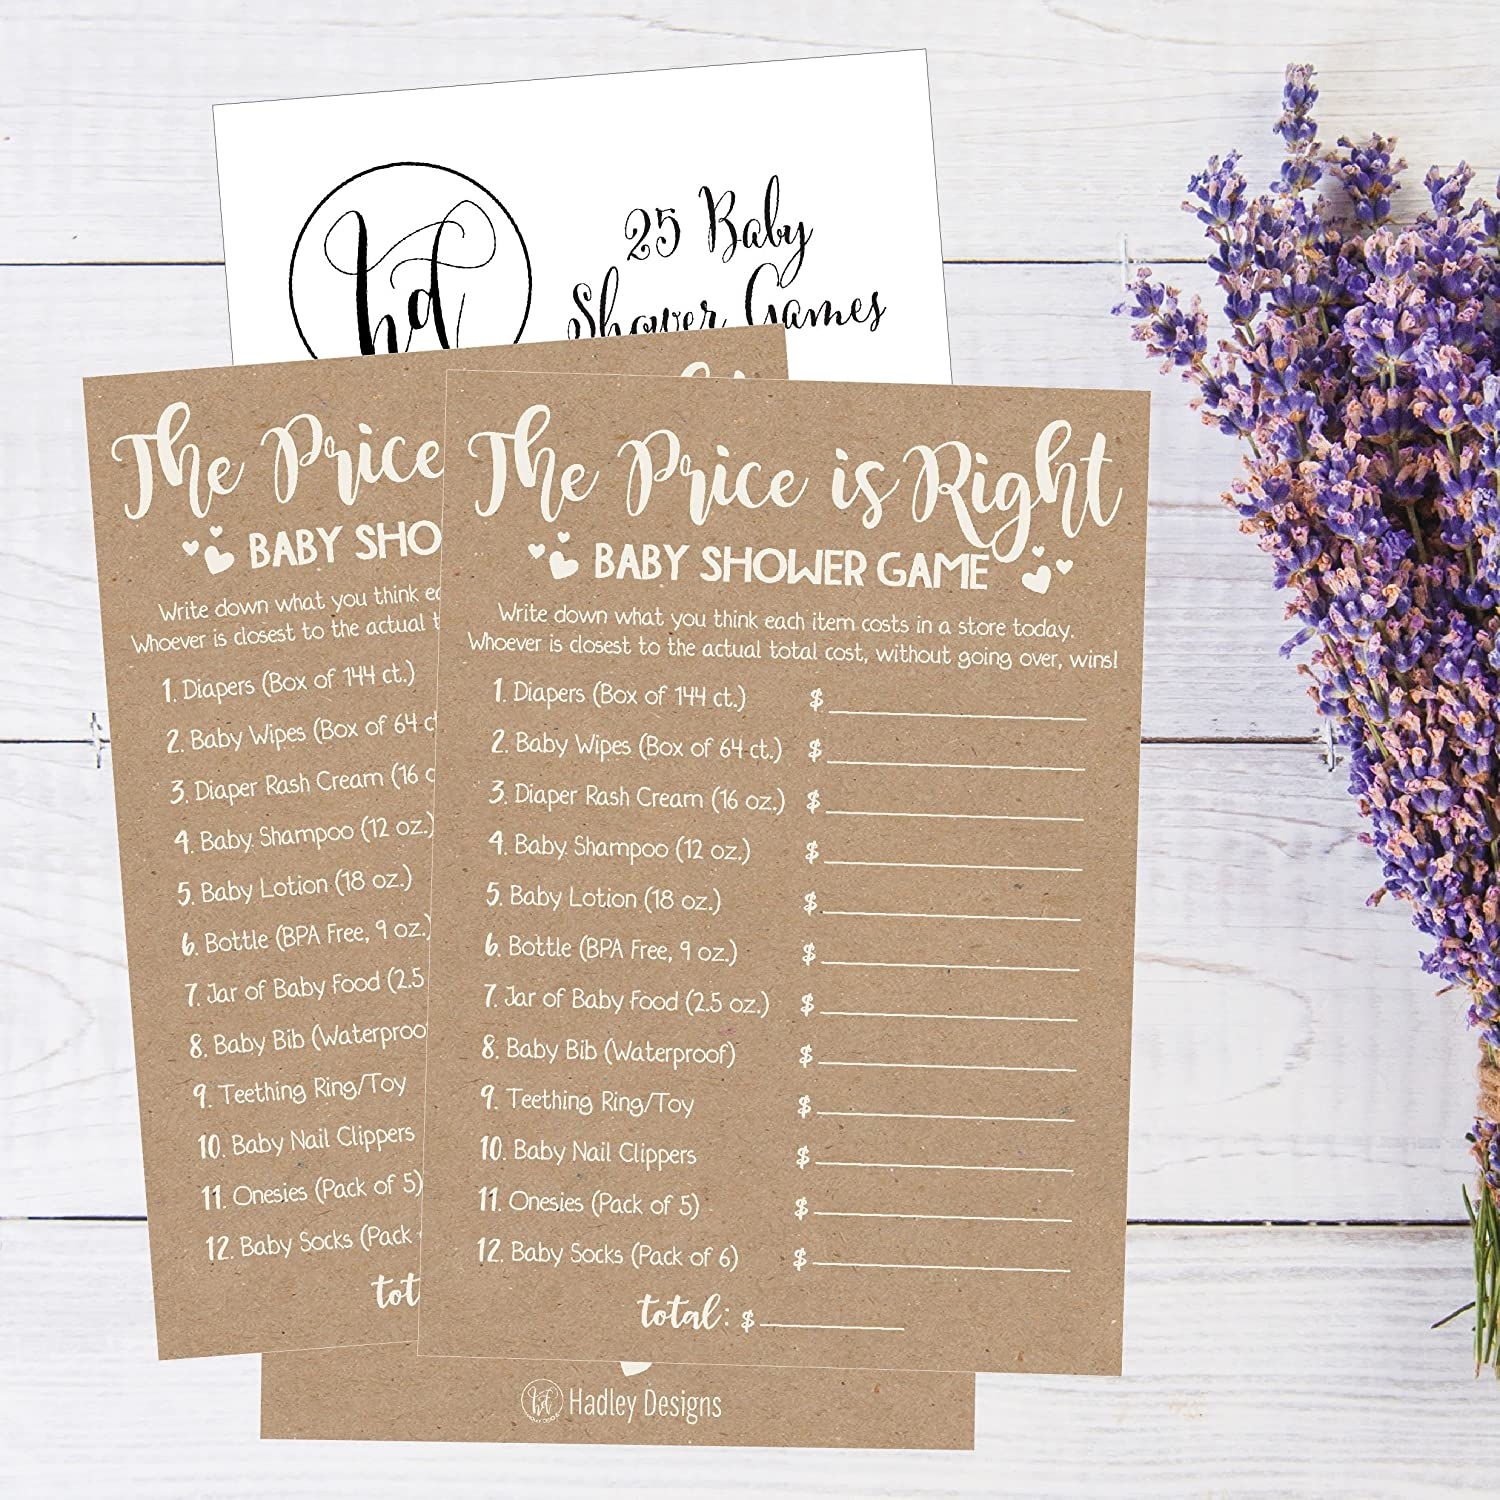 17e1de9e58 Amazon.com  25 Rustic Guess If The Price is Right Baby Shower Game Ideas  for Boys Girls Fun Party Activities Cards Best Gender Neutral Reveal  Guessing Funny ...